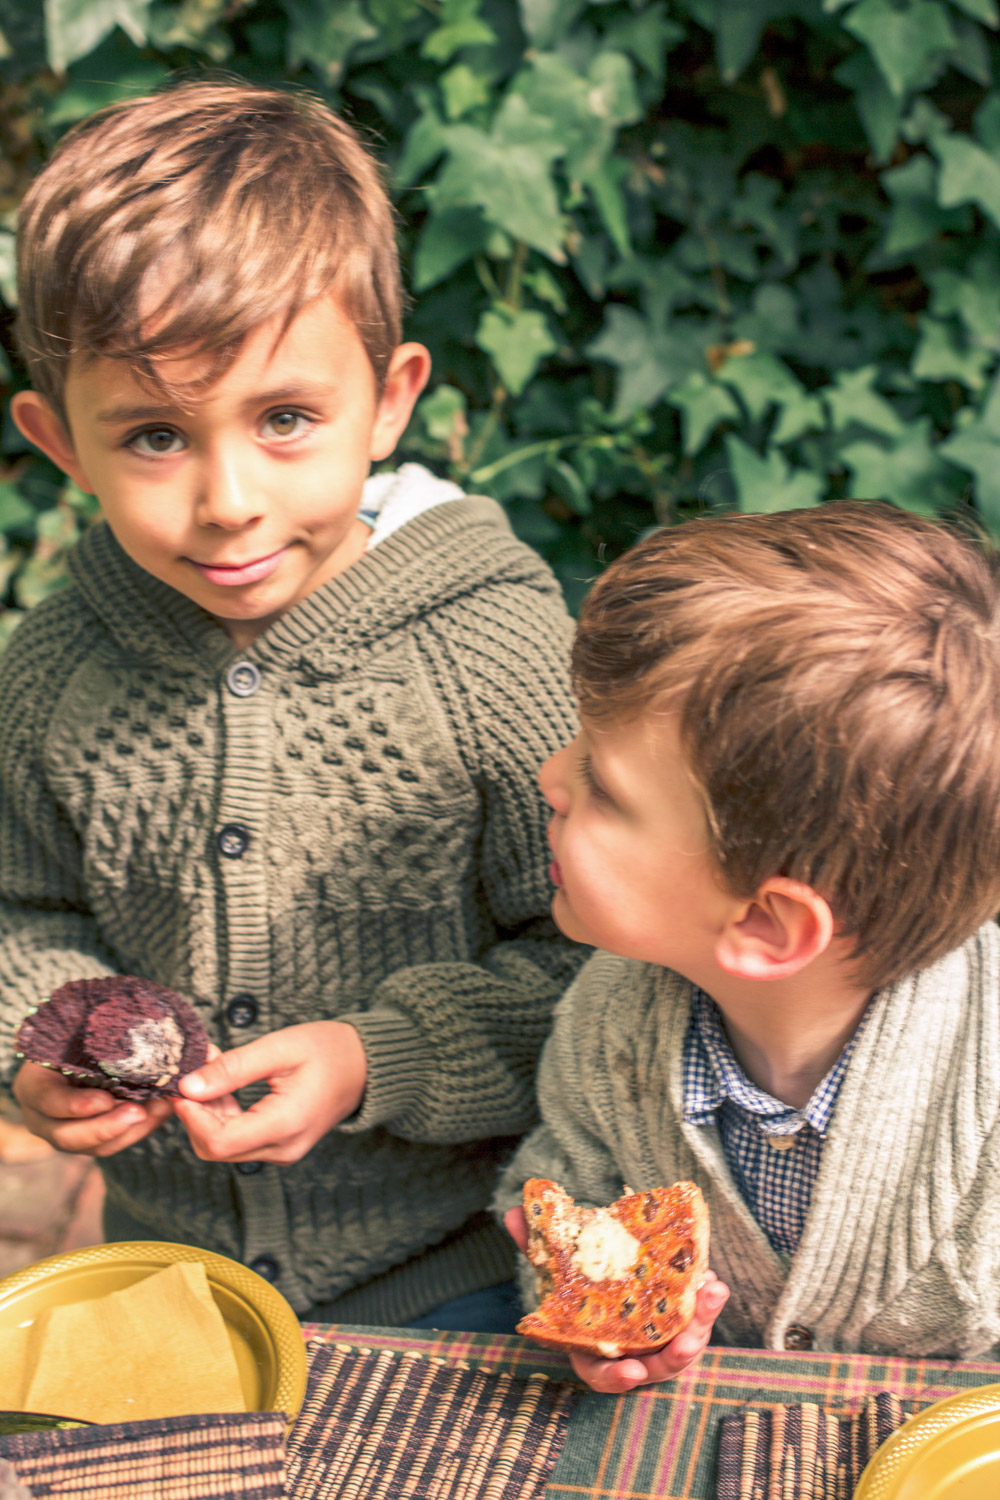 Little boys dressed in knit cardigans eating hot cross buns at autumn easter egg hunt party